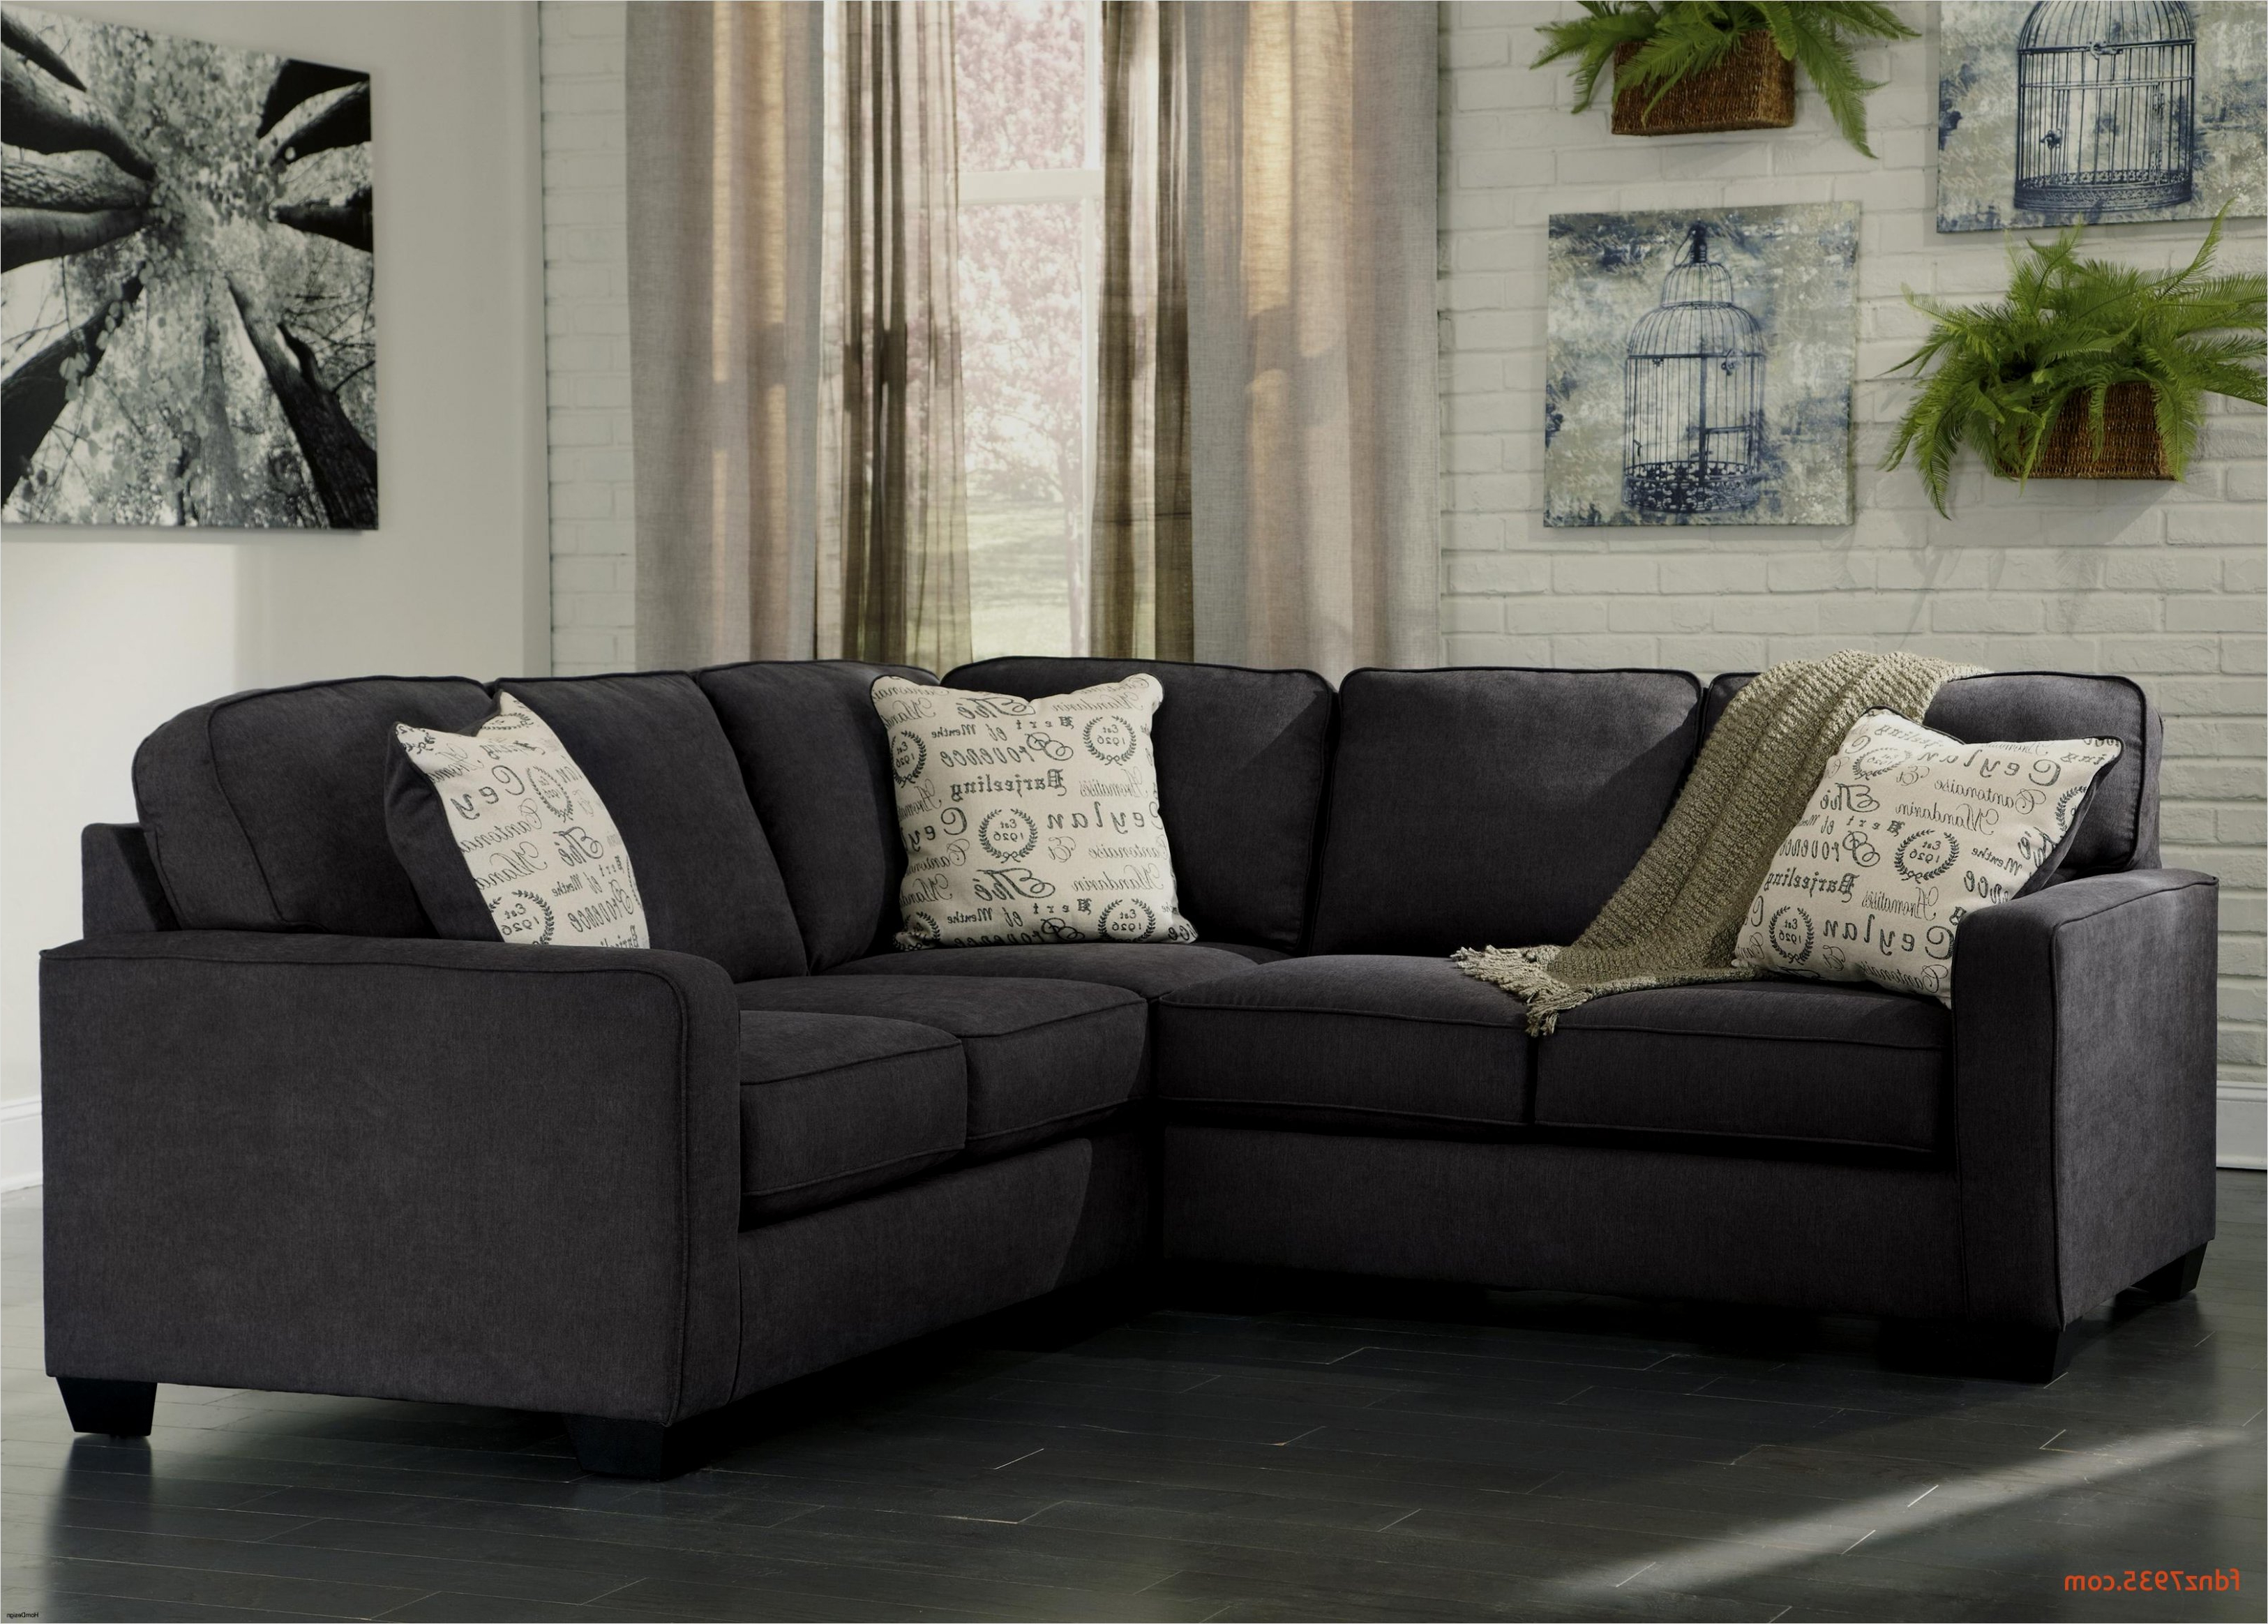 Bettsofa Outlet Sofa Berlin Outlet